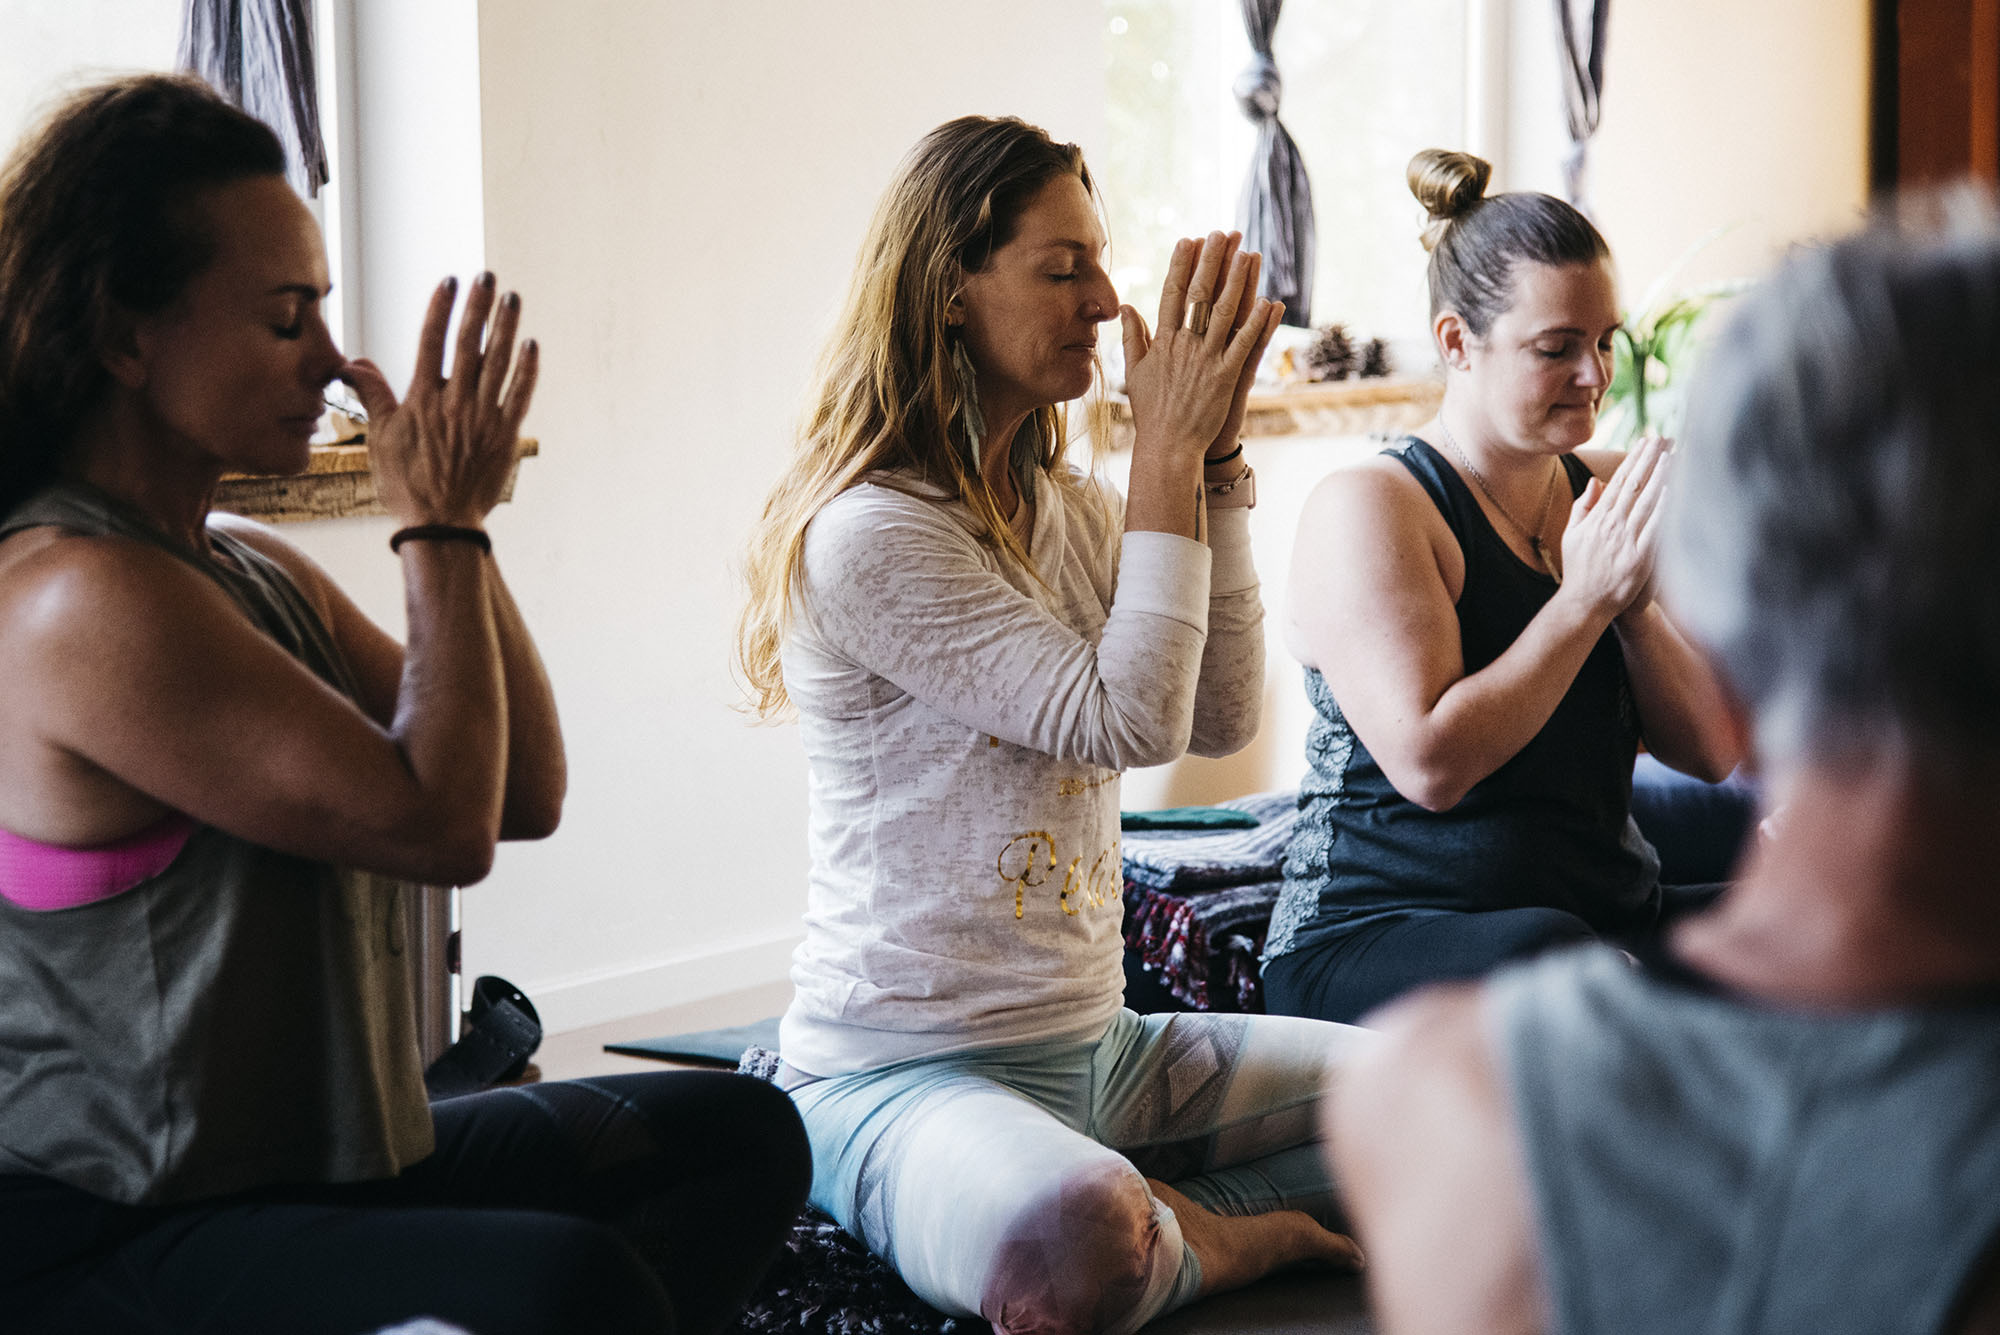 - Suitable for all levels. A restful, calming class including breathing, gentle flowing movements, passive and supported poses. This is a perfect beginning yoga class that is also appropriate for those working with injury, limited mobility, or who prefer a softer, gentler approach to yoga.